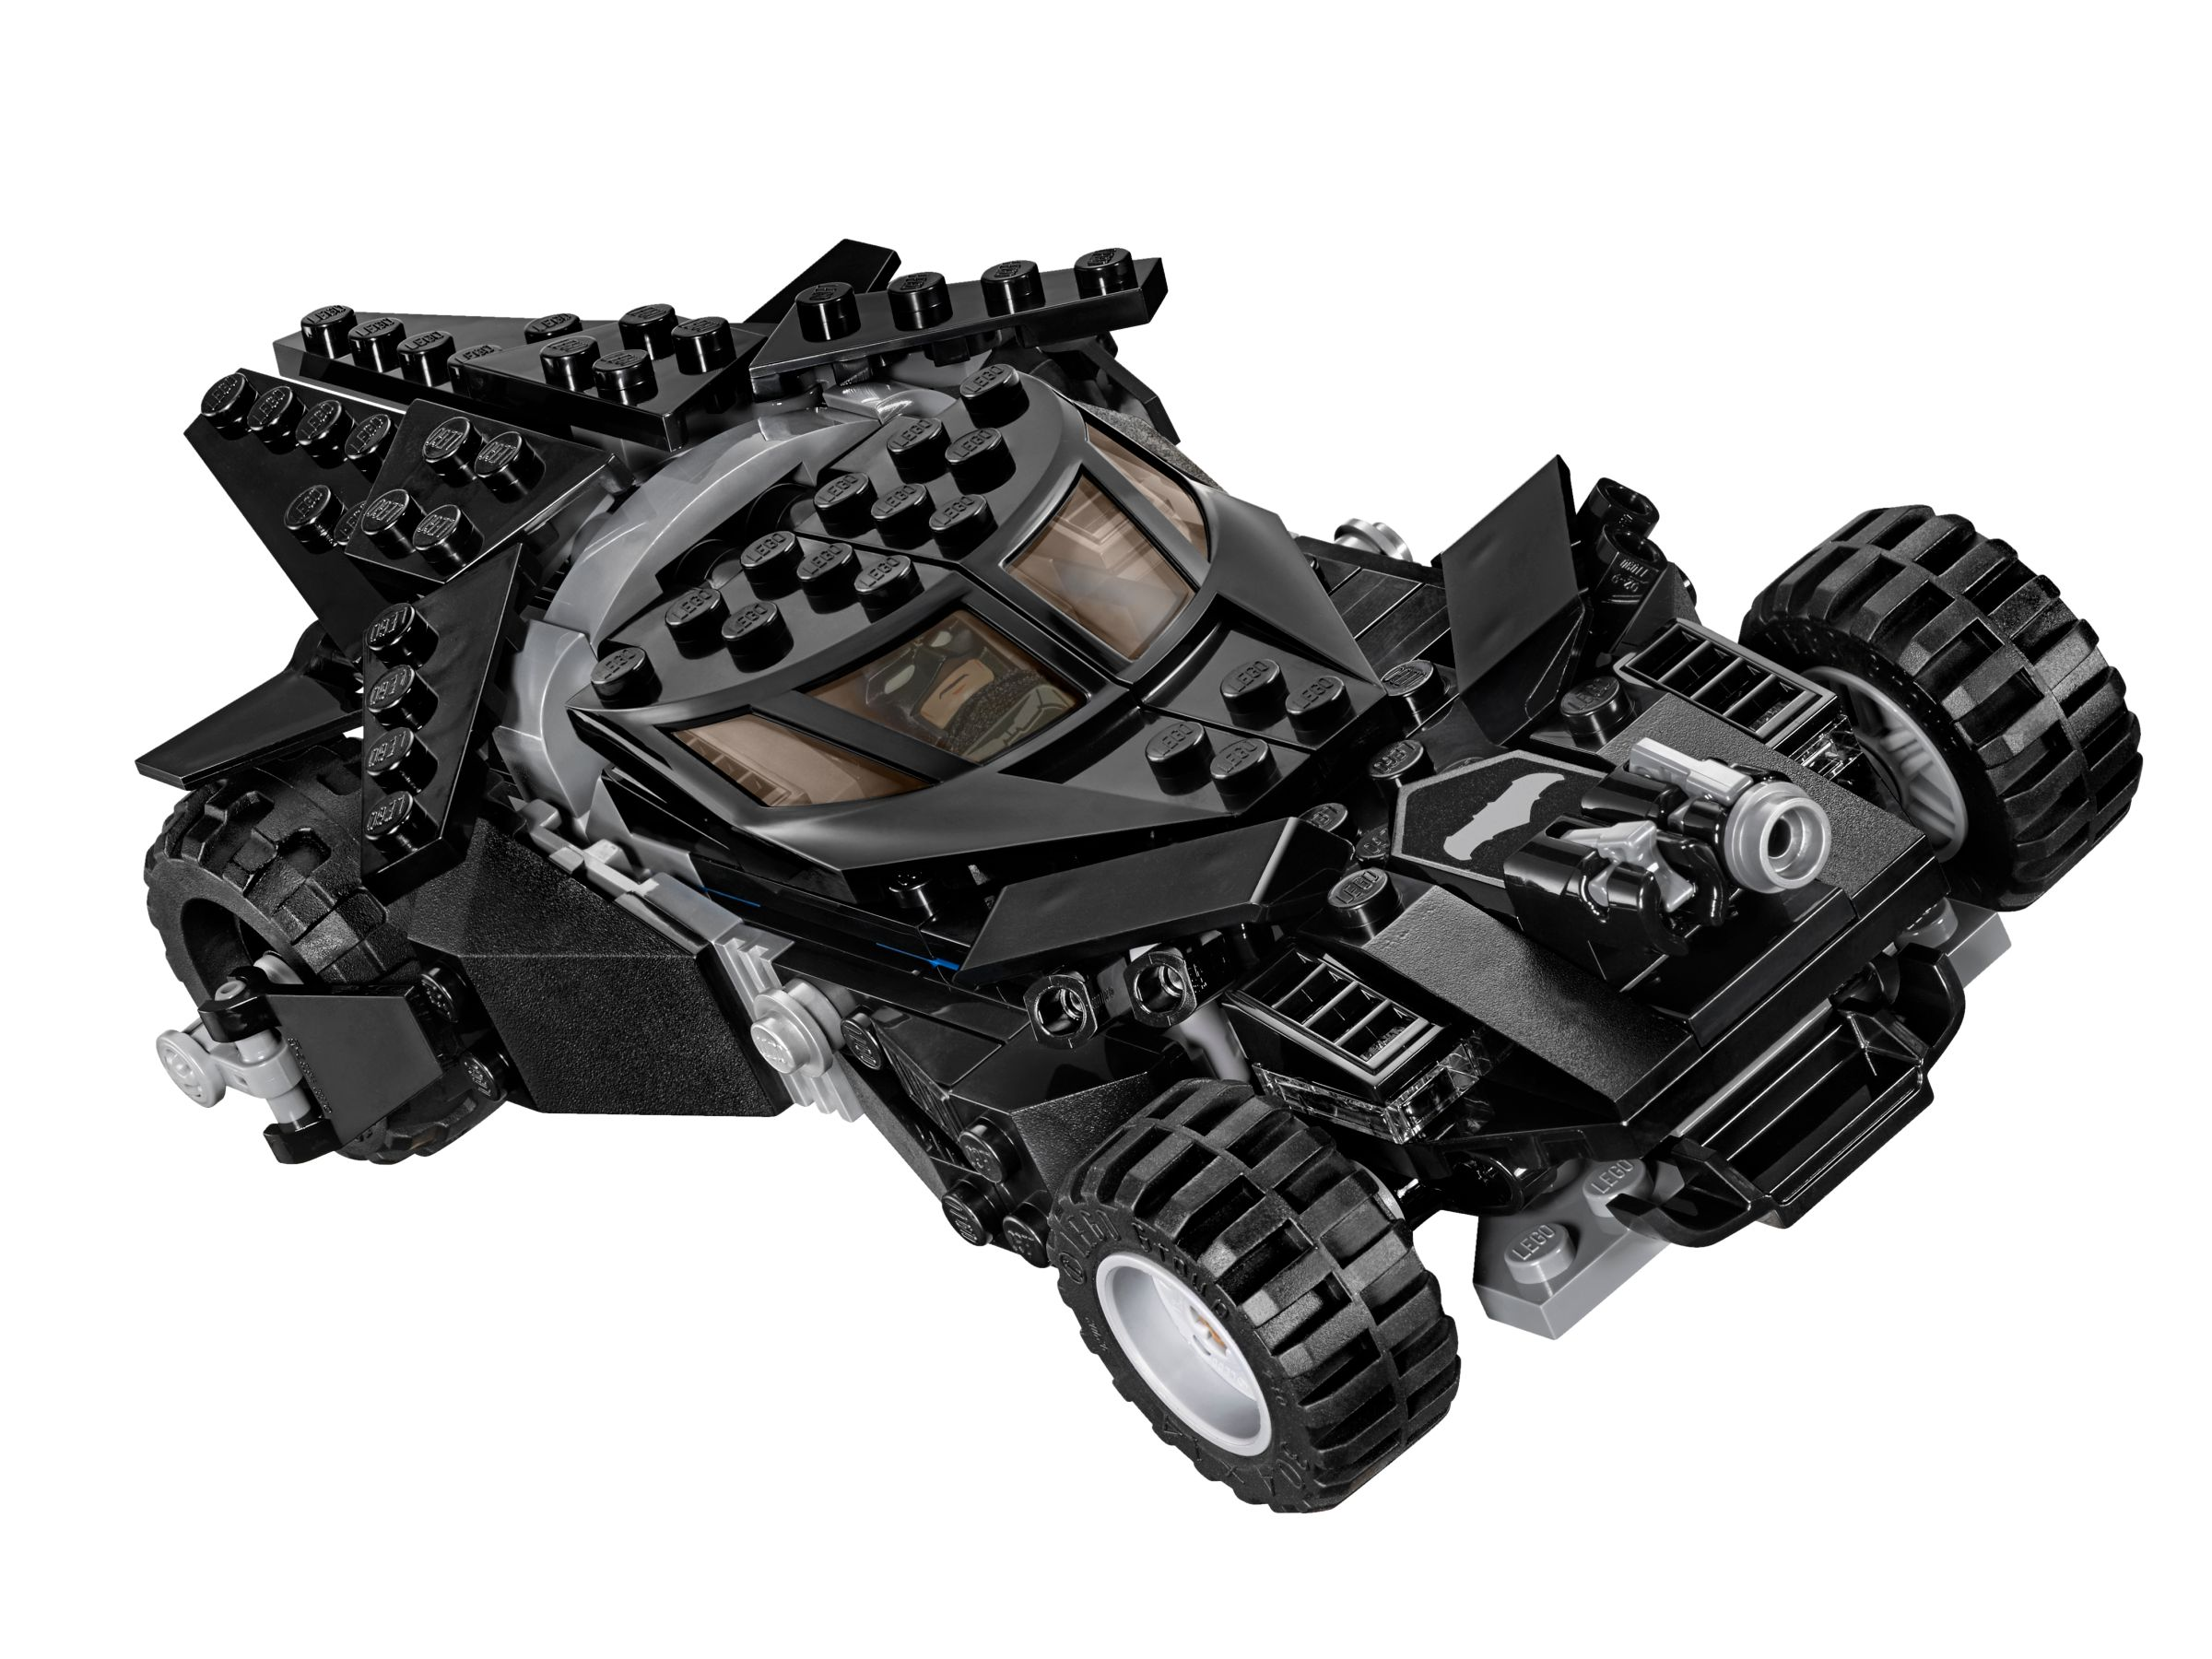 LEGO Super Heroes 76045 Kryptonit-Mission im Batmobil LEGO_76045_alt3.jpg